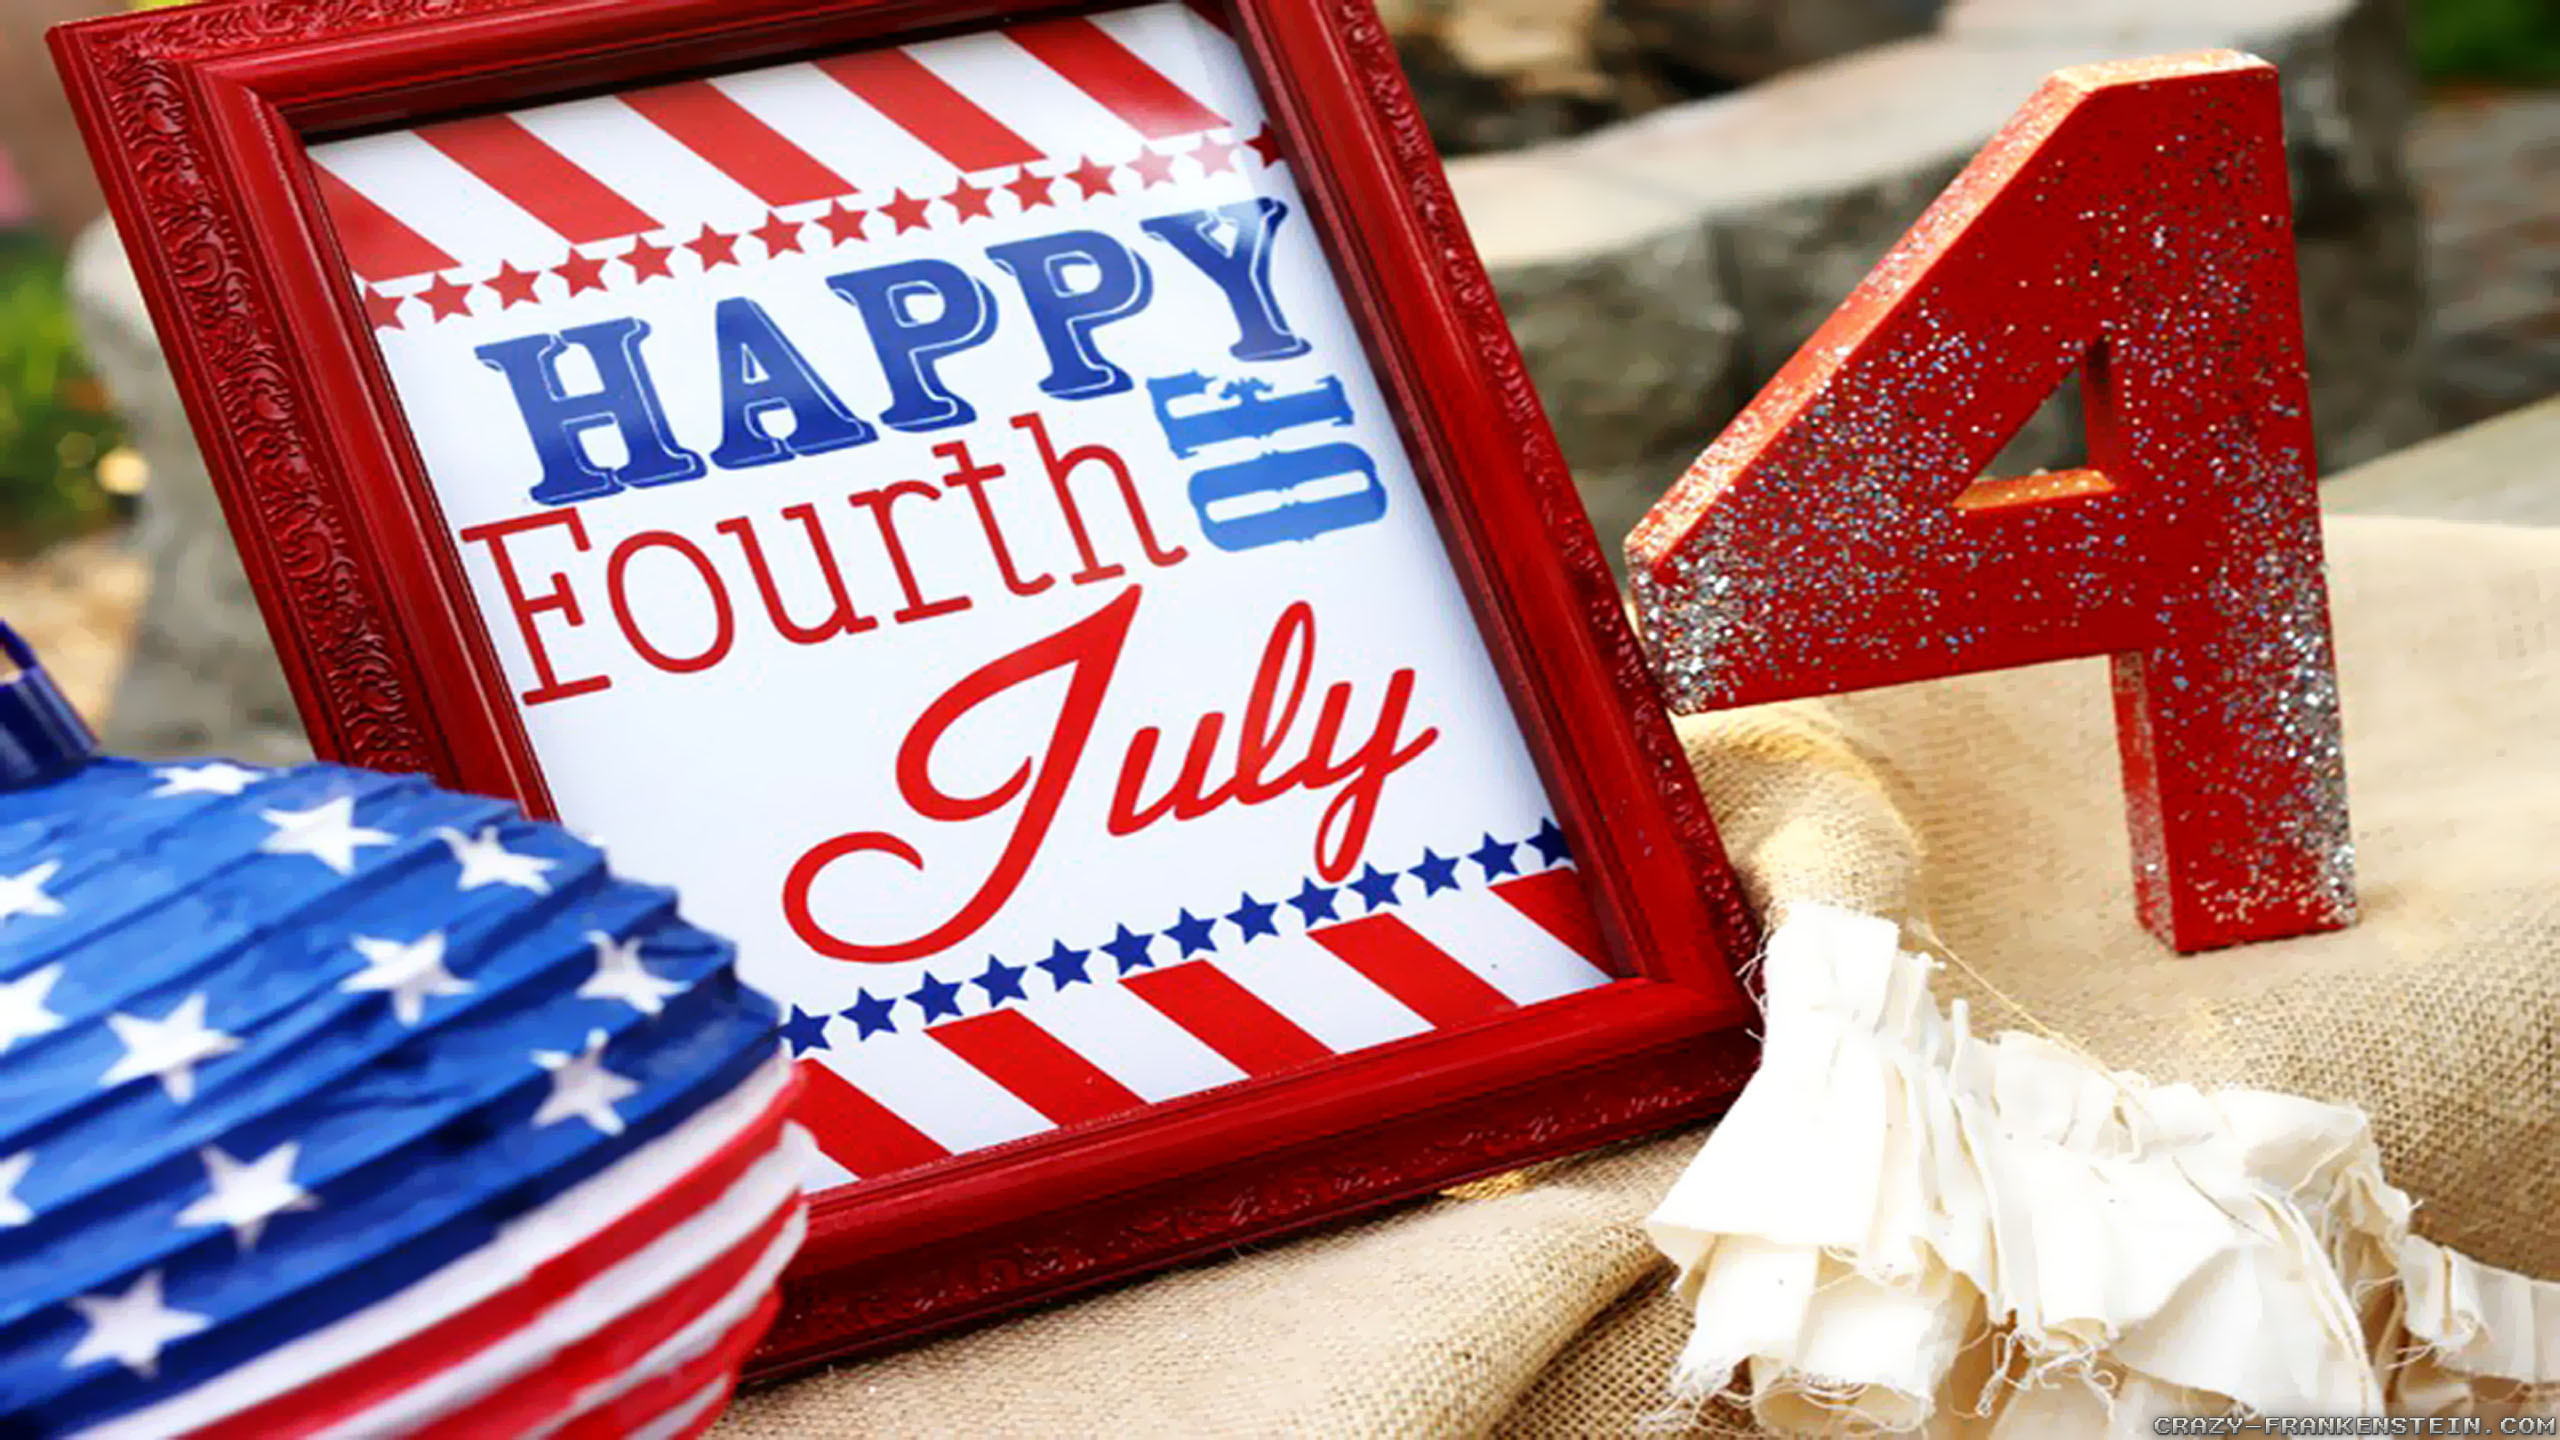 Wallpaper: Cool July 4th decorations wallpapers. Resolution: 1024×768 |  1280×1024 | 1600×1200. Widescreen Res: 1440×900 | 1680×1050 | 1920×1200